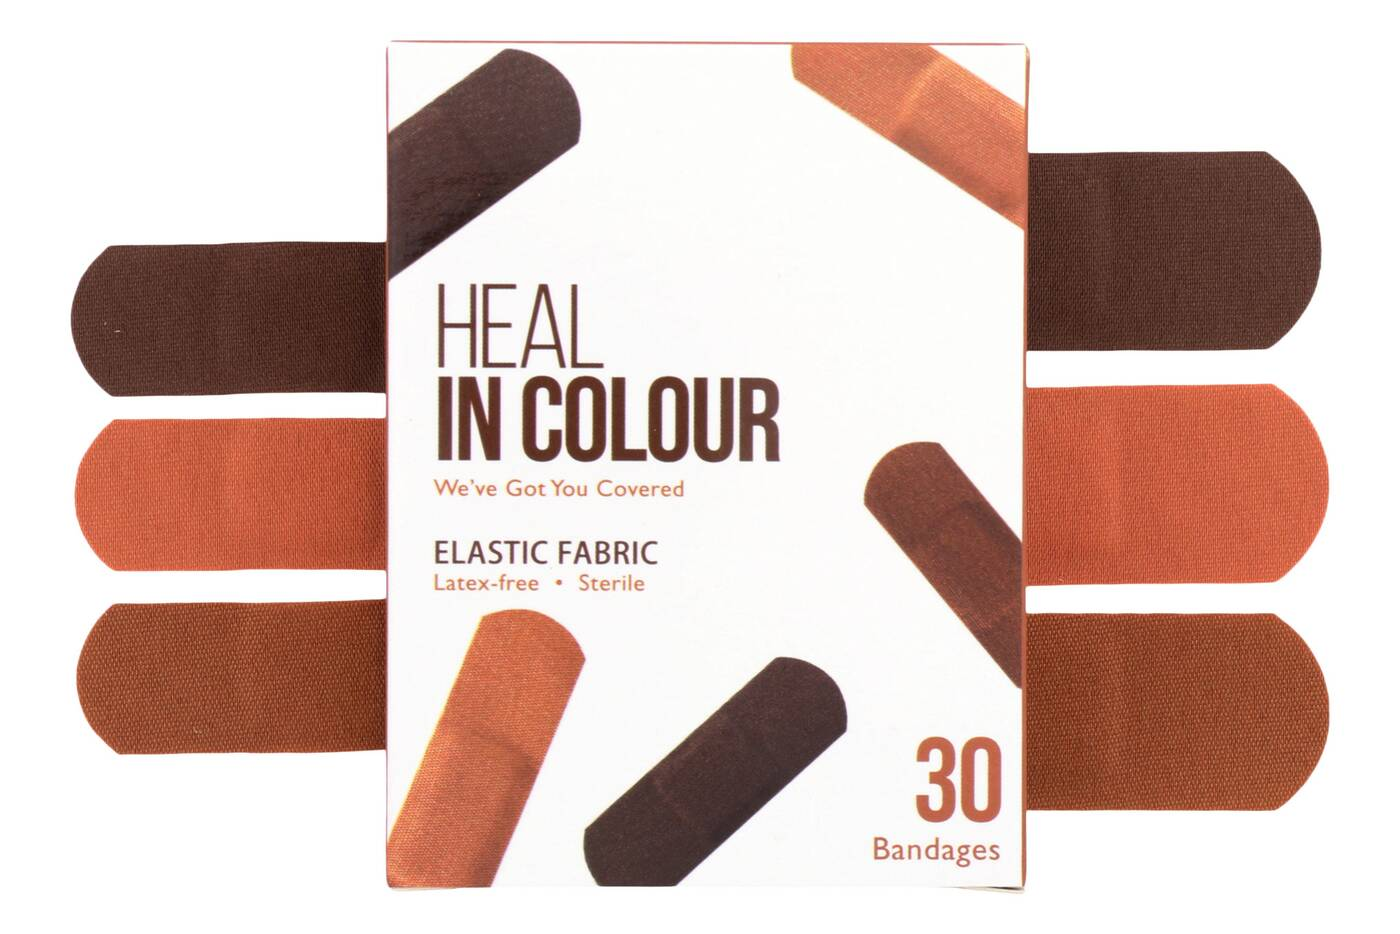 heal in colour